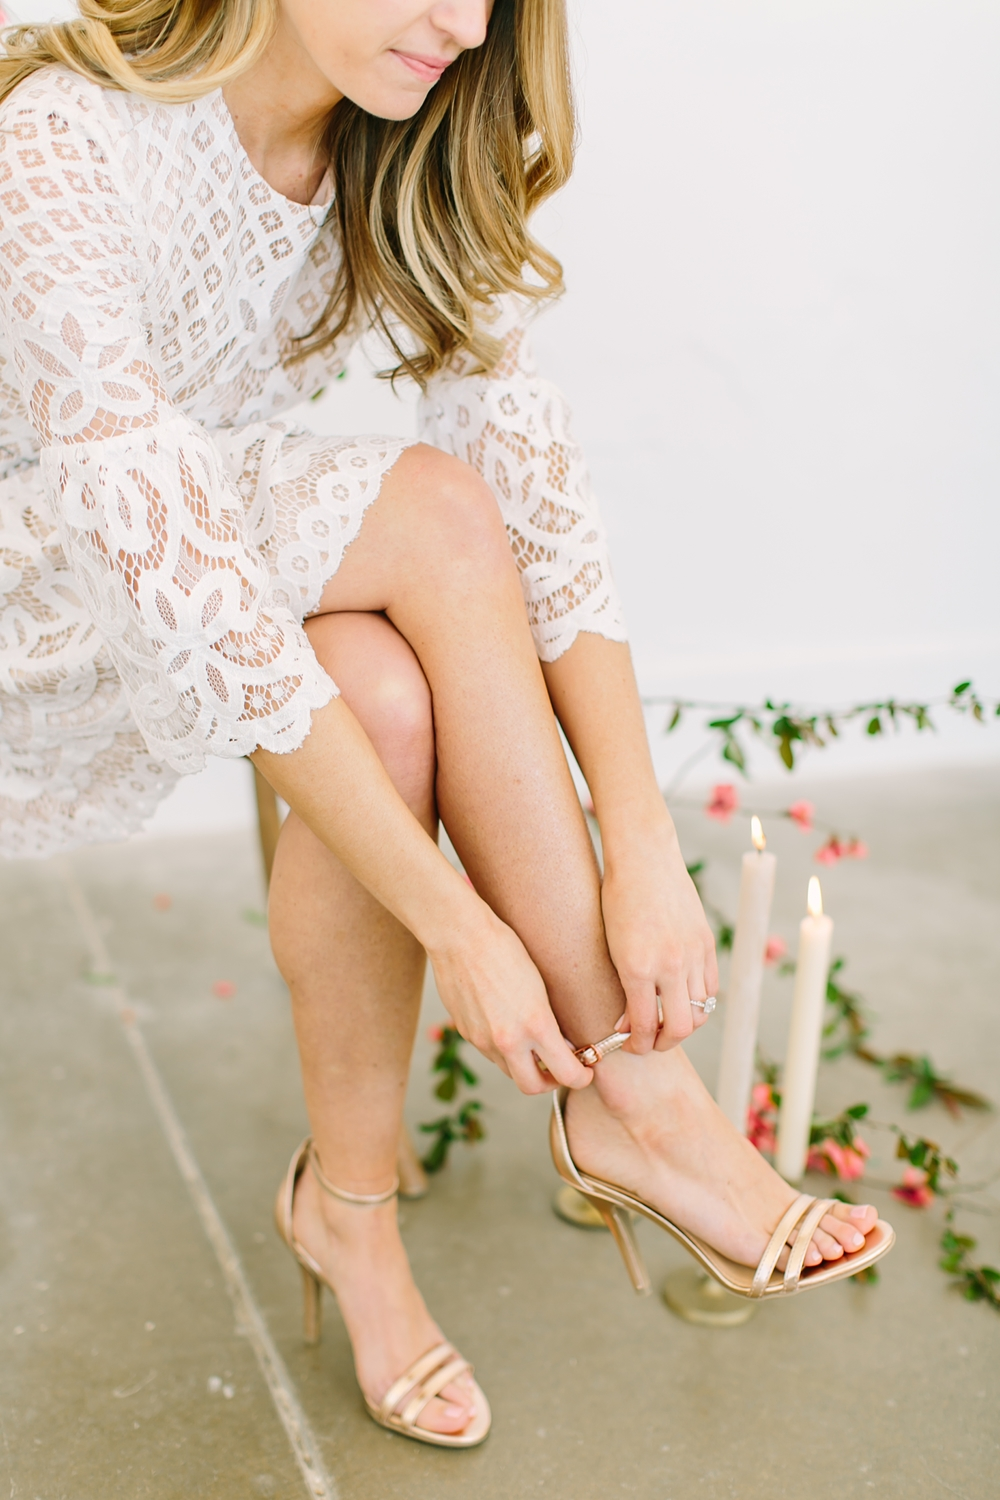 dressed_by_jess_eliza_j_dress_lauren_conrad_photos-_0005.jpg